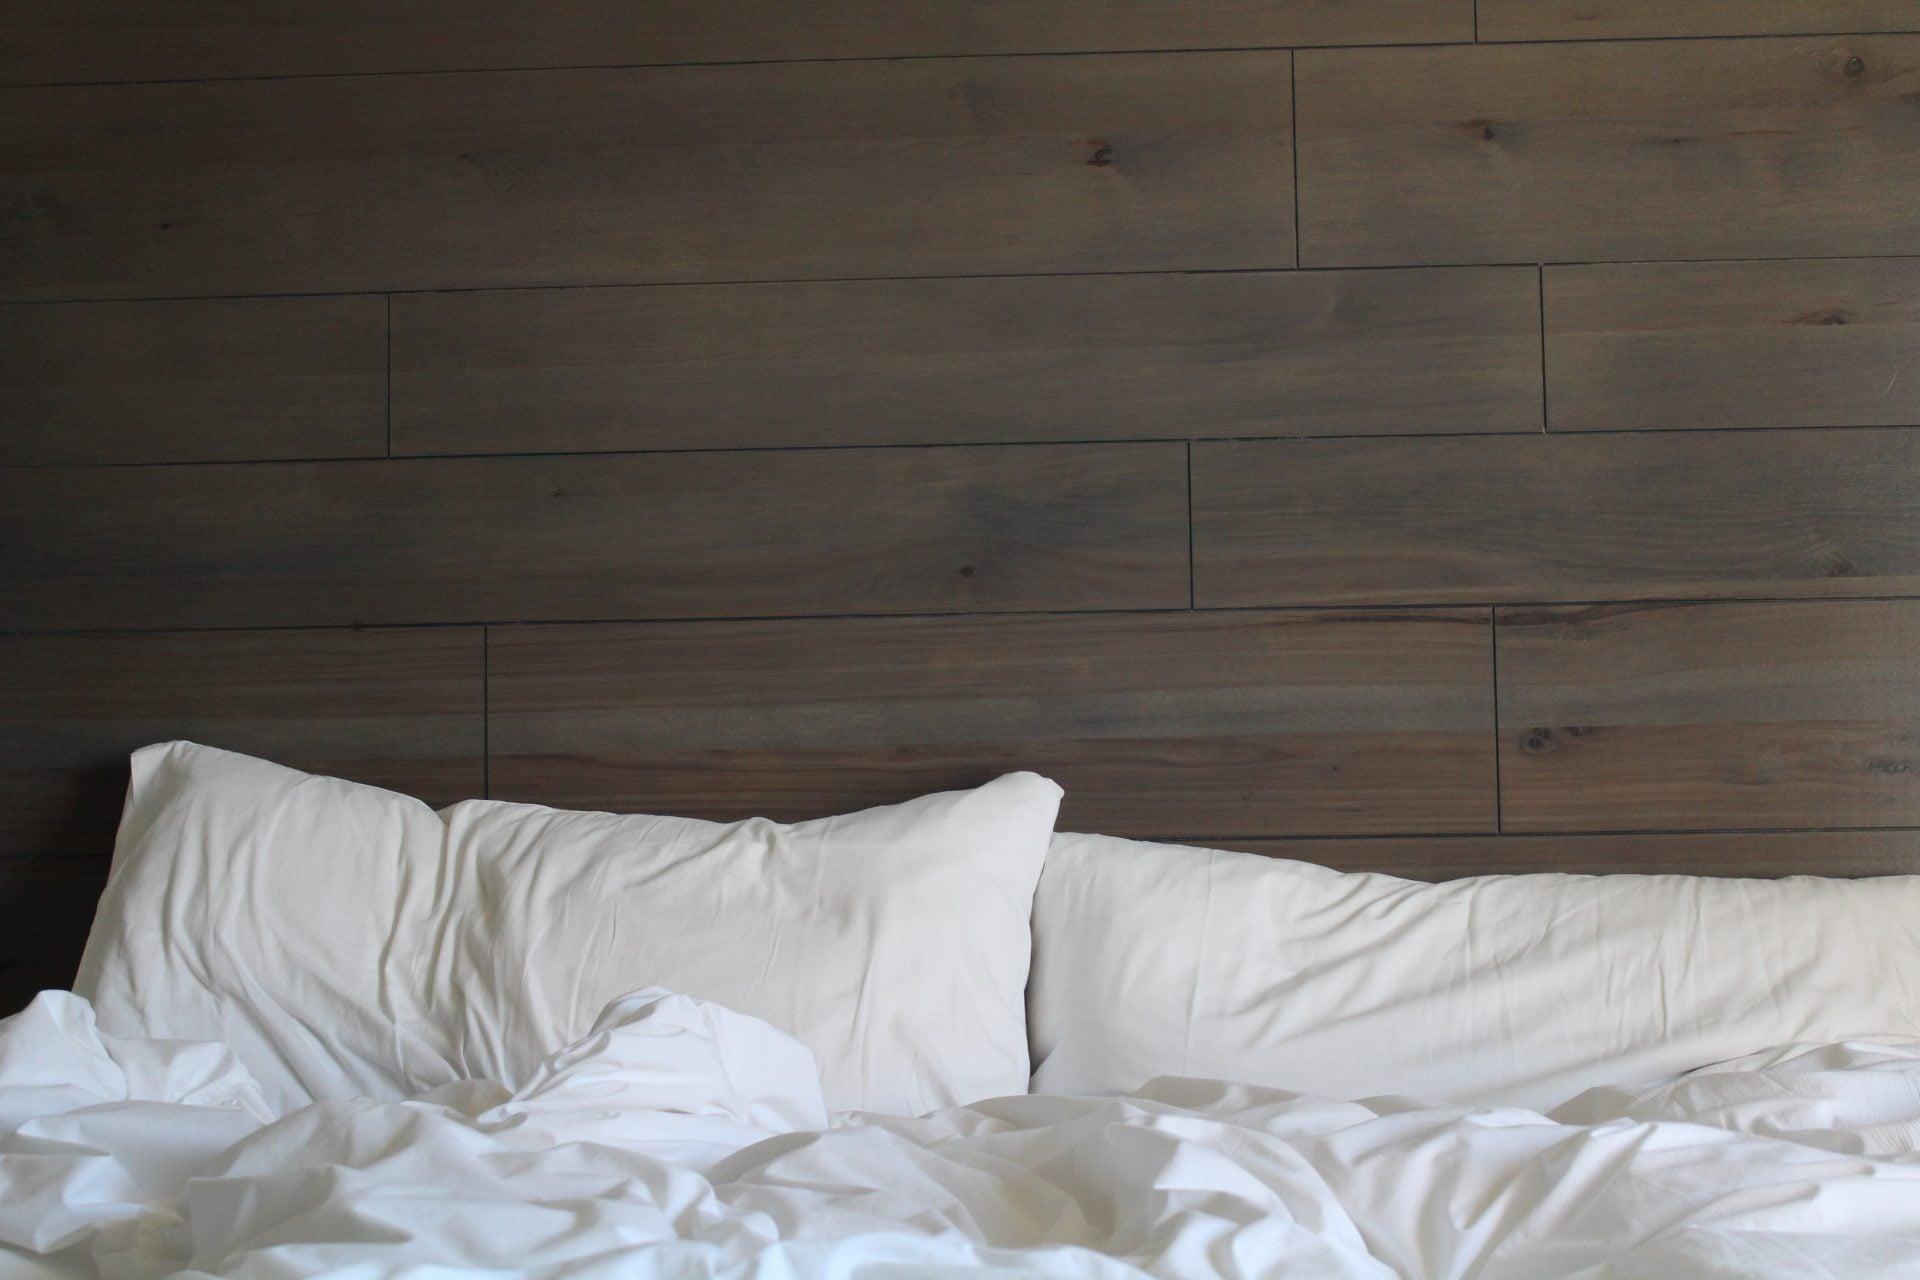 morgan lane n7u0 cpFcW8 unsplash 1920x1280 - Selecting the best sheets for your bed